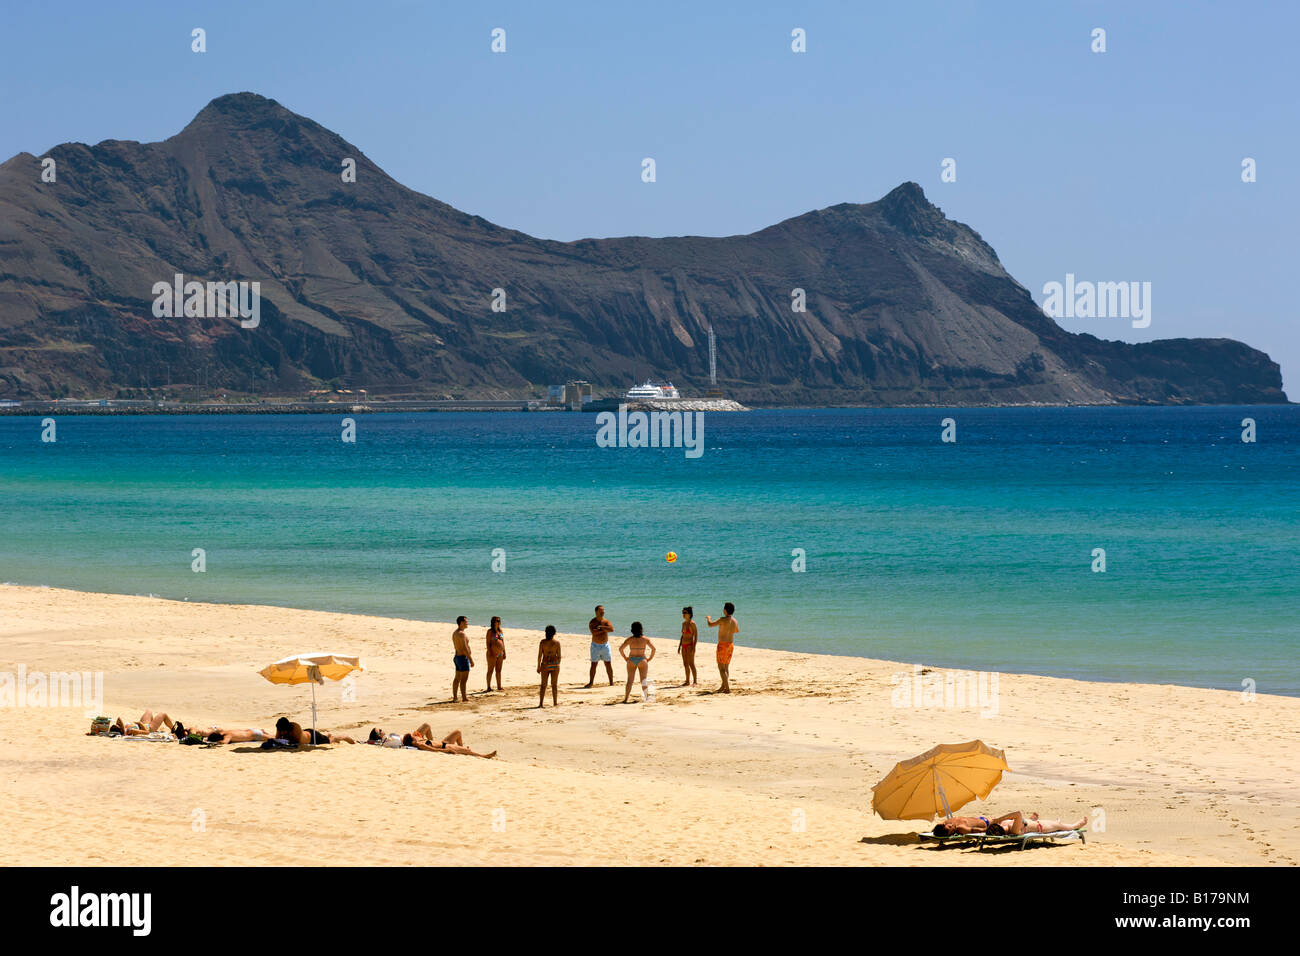 People playing ball on the beach of the Portuguese Atlantic island of Porto Santo. - Stock Image